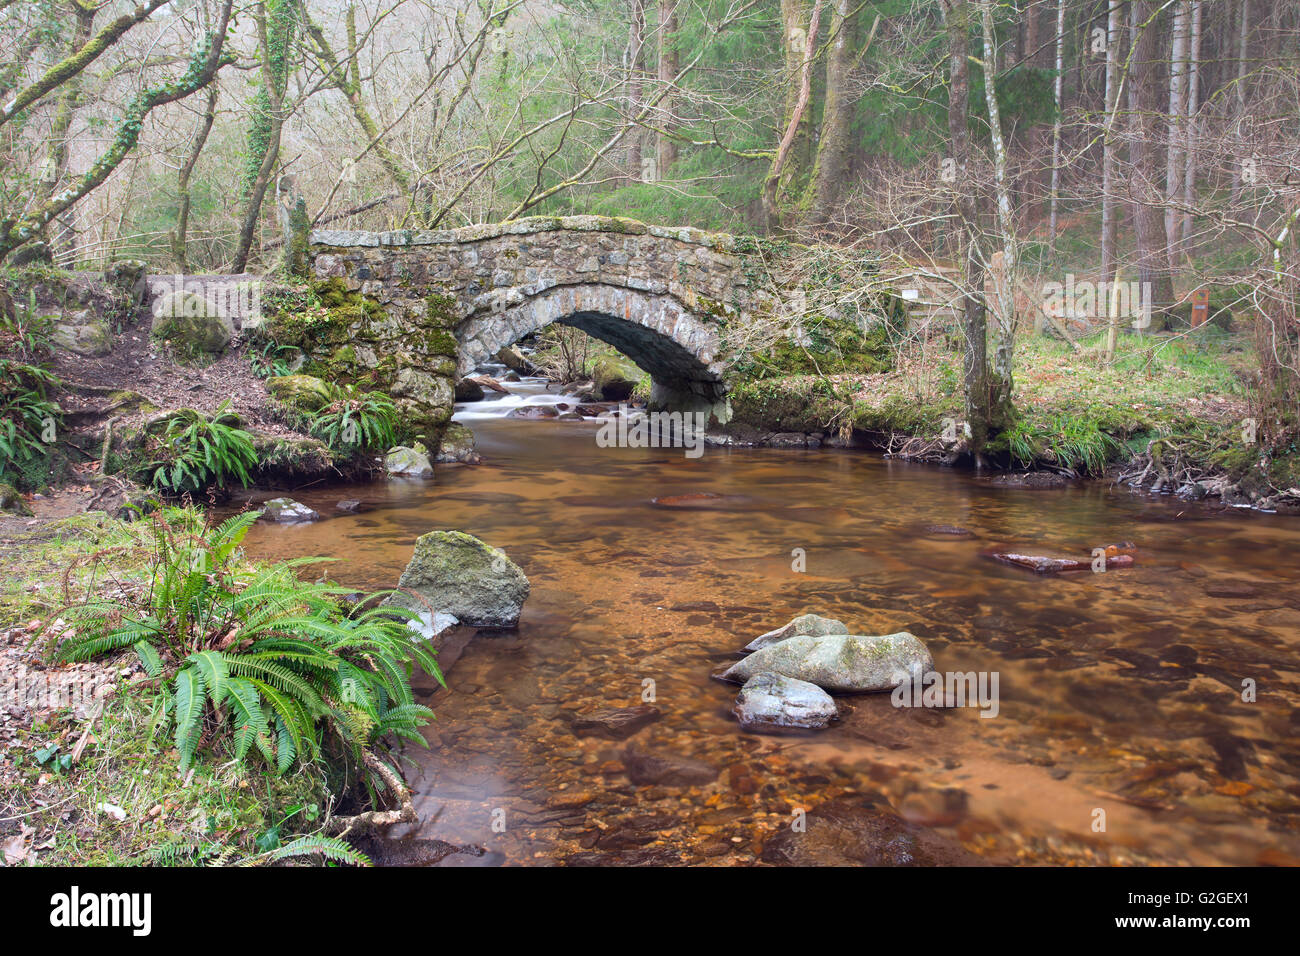 Hound Tor Bridge over the River Bovey within the Dartmoor National Park - Stock Image